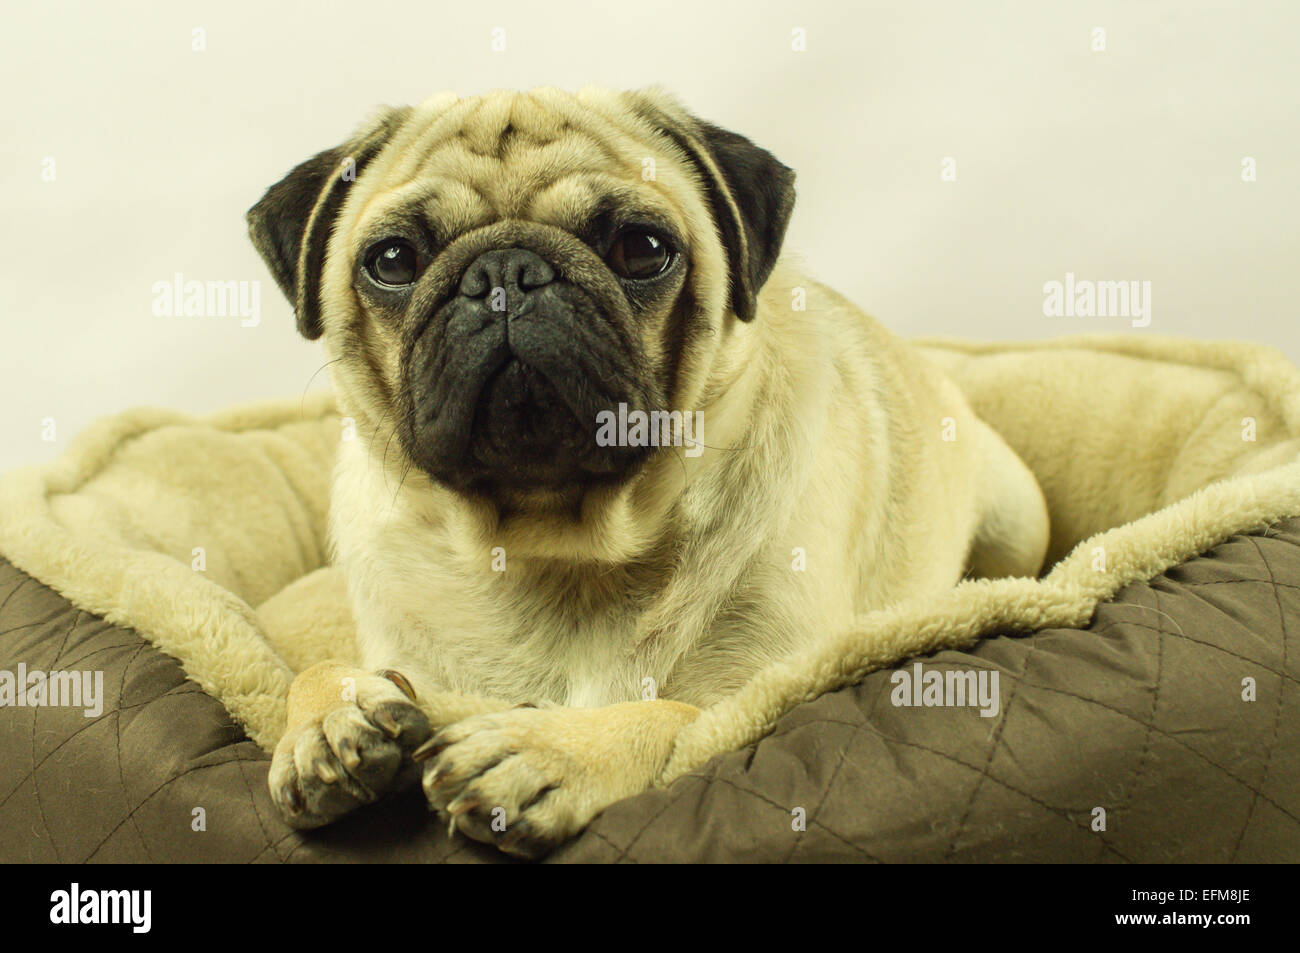 A Pug dog laying on a dog bed - Stock Image